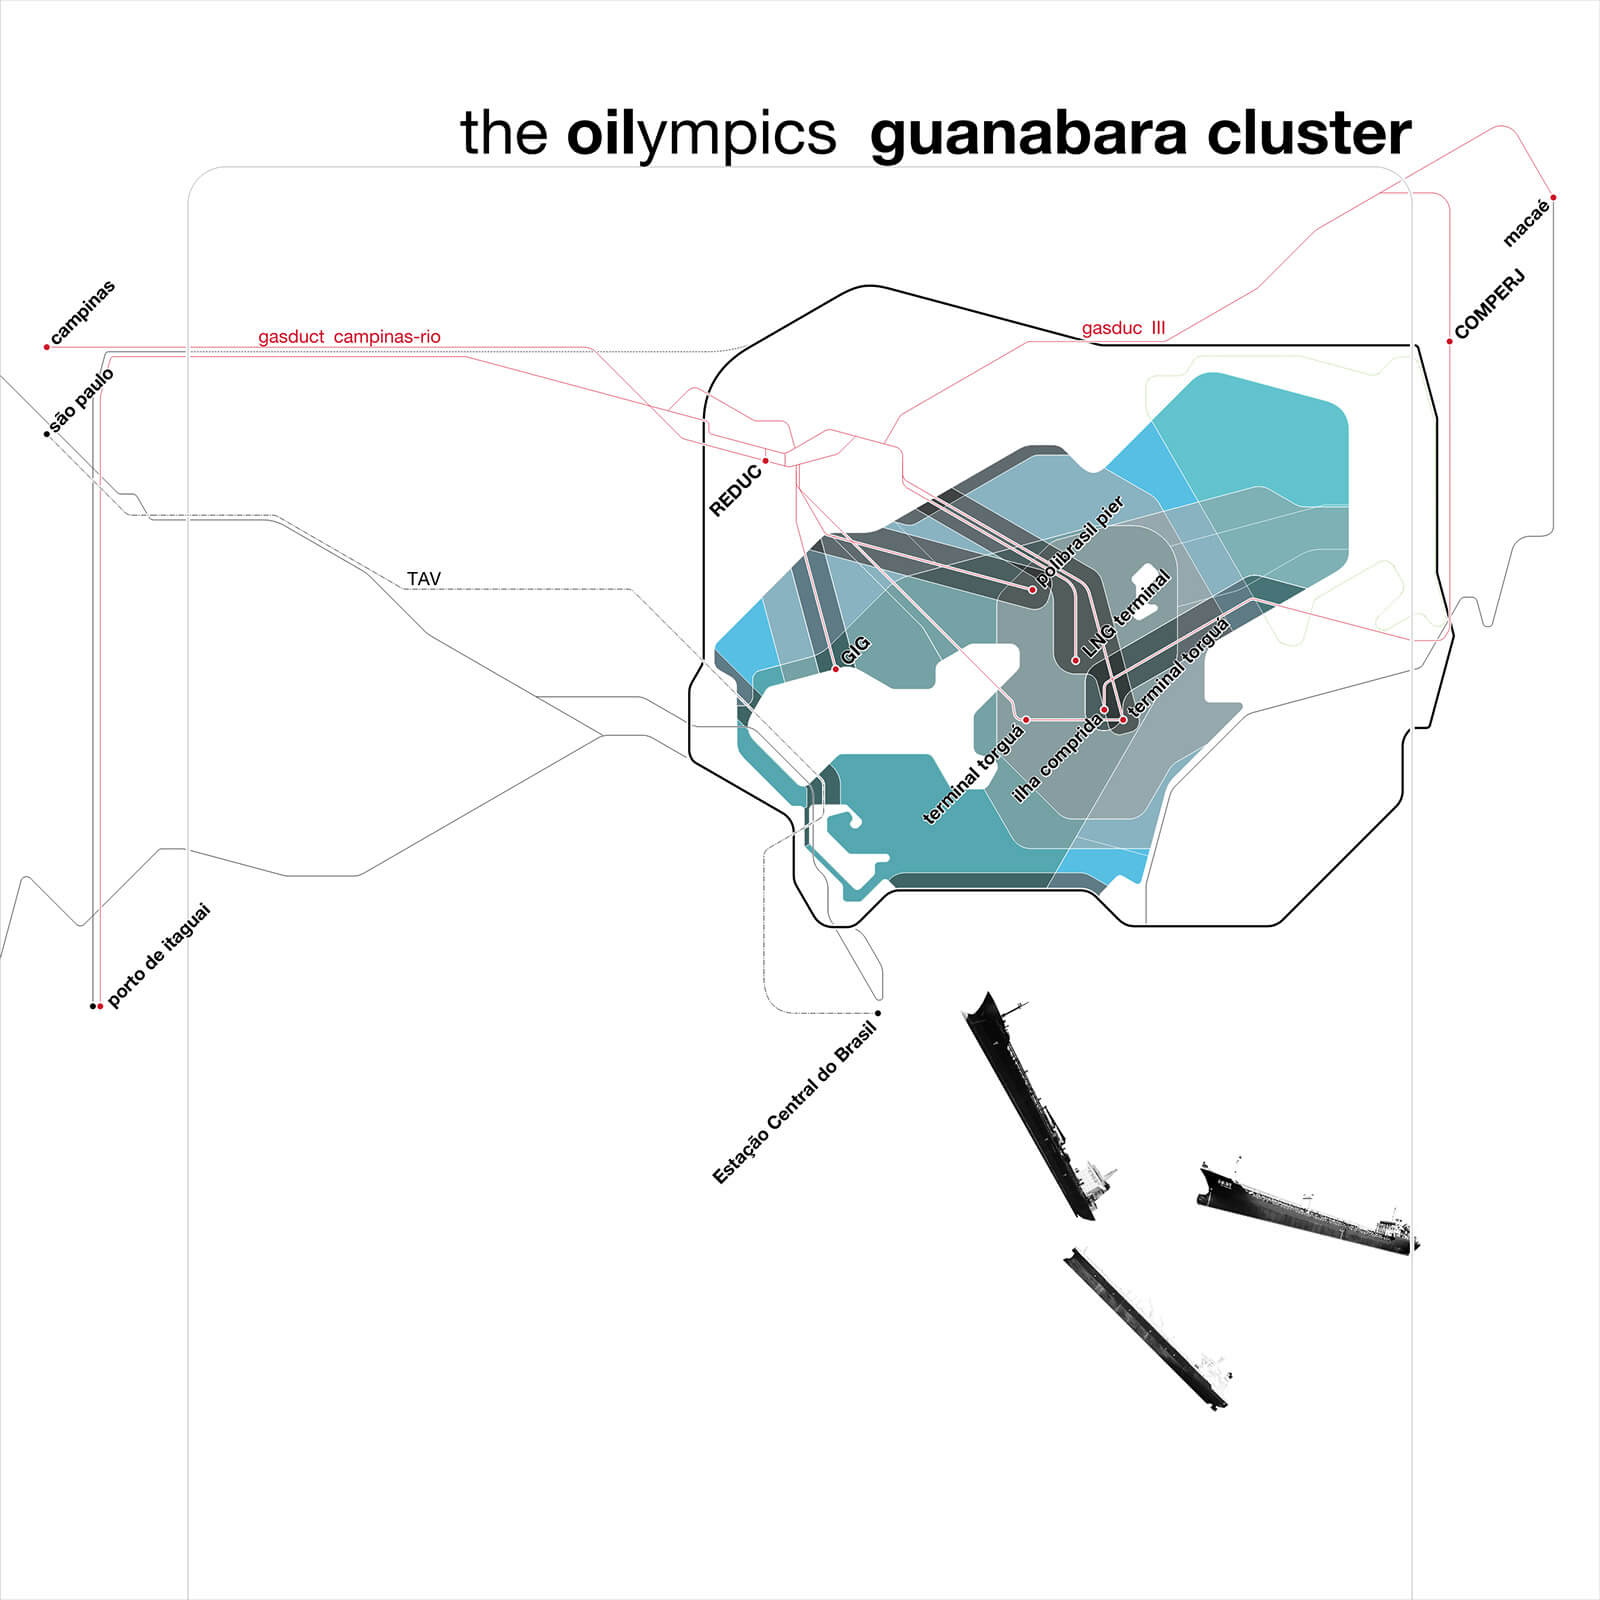 studio vara research rio-olympics drawing diagram cluster